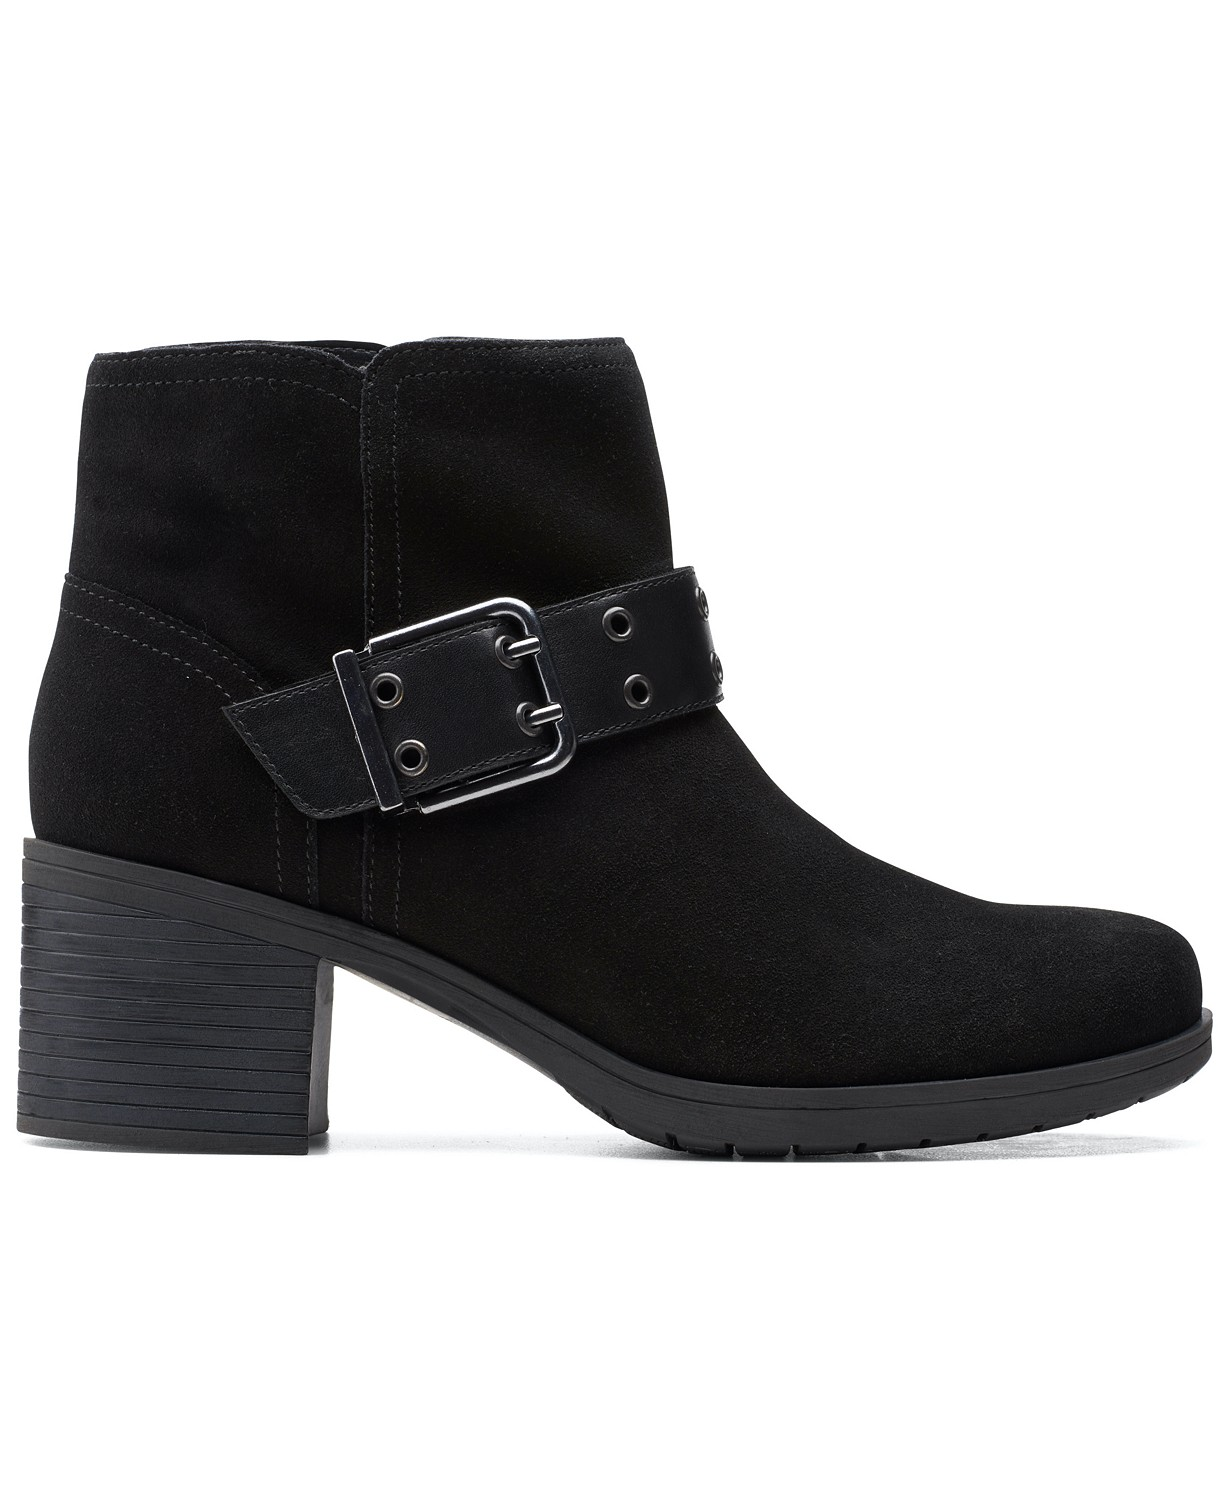 Clarks Women's Hollis Star Buckled Booties